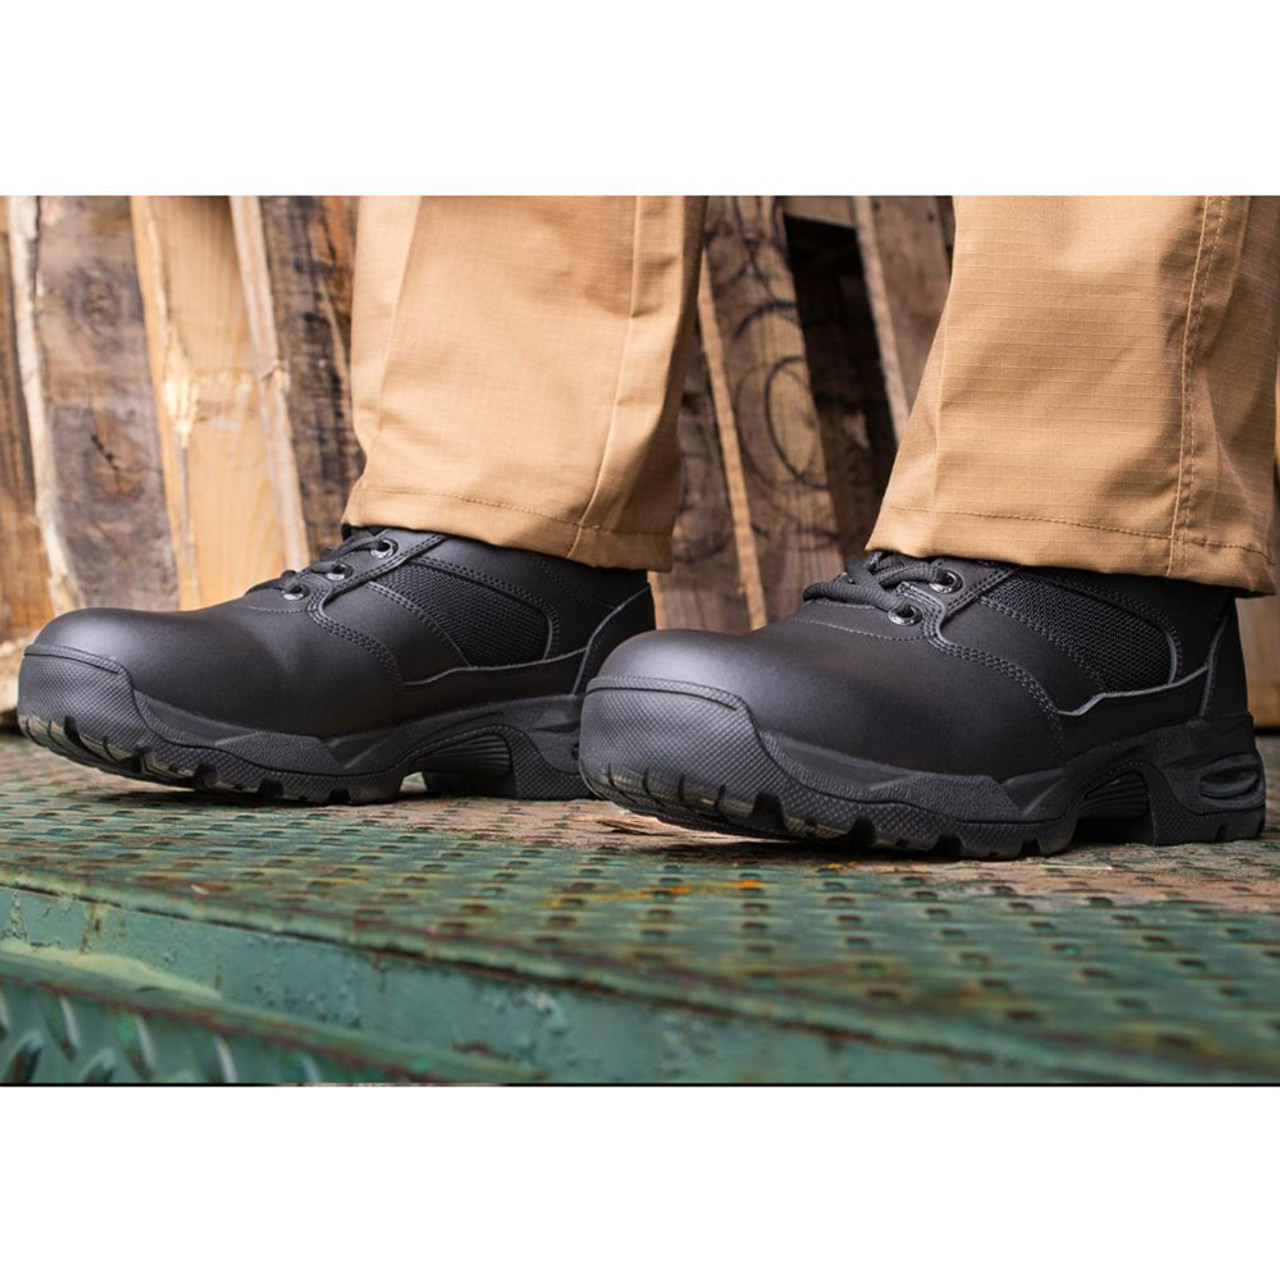 Propper® F4531 Shift Low Top Men's or Women's Uniform/Casual Boots, Regular or Wide Width, Oil and Slip Resistant